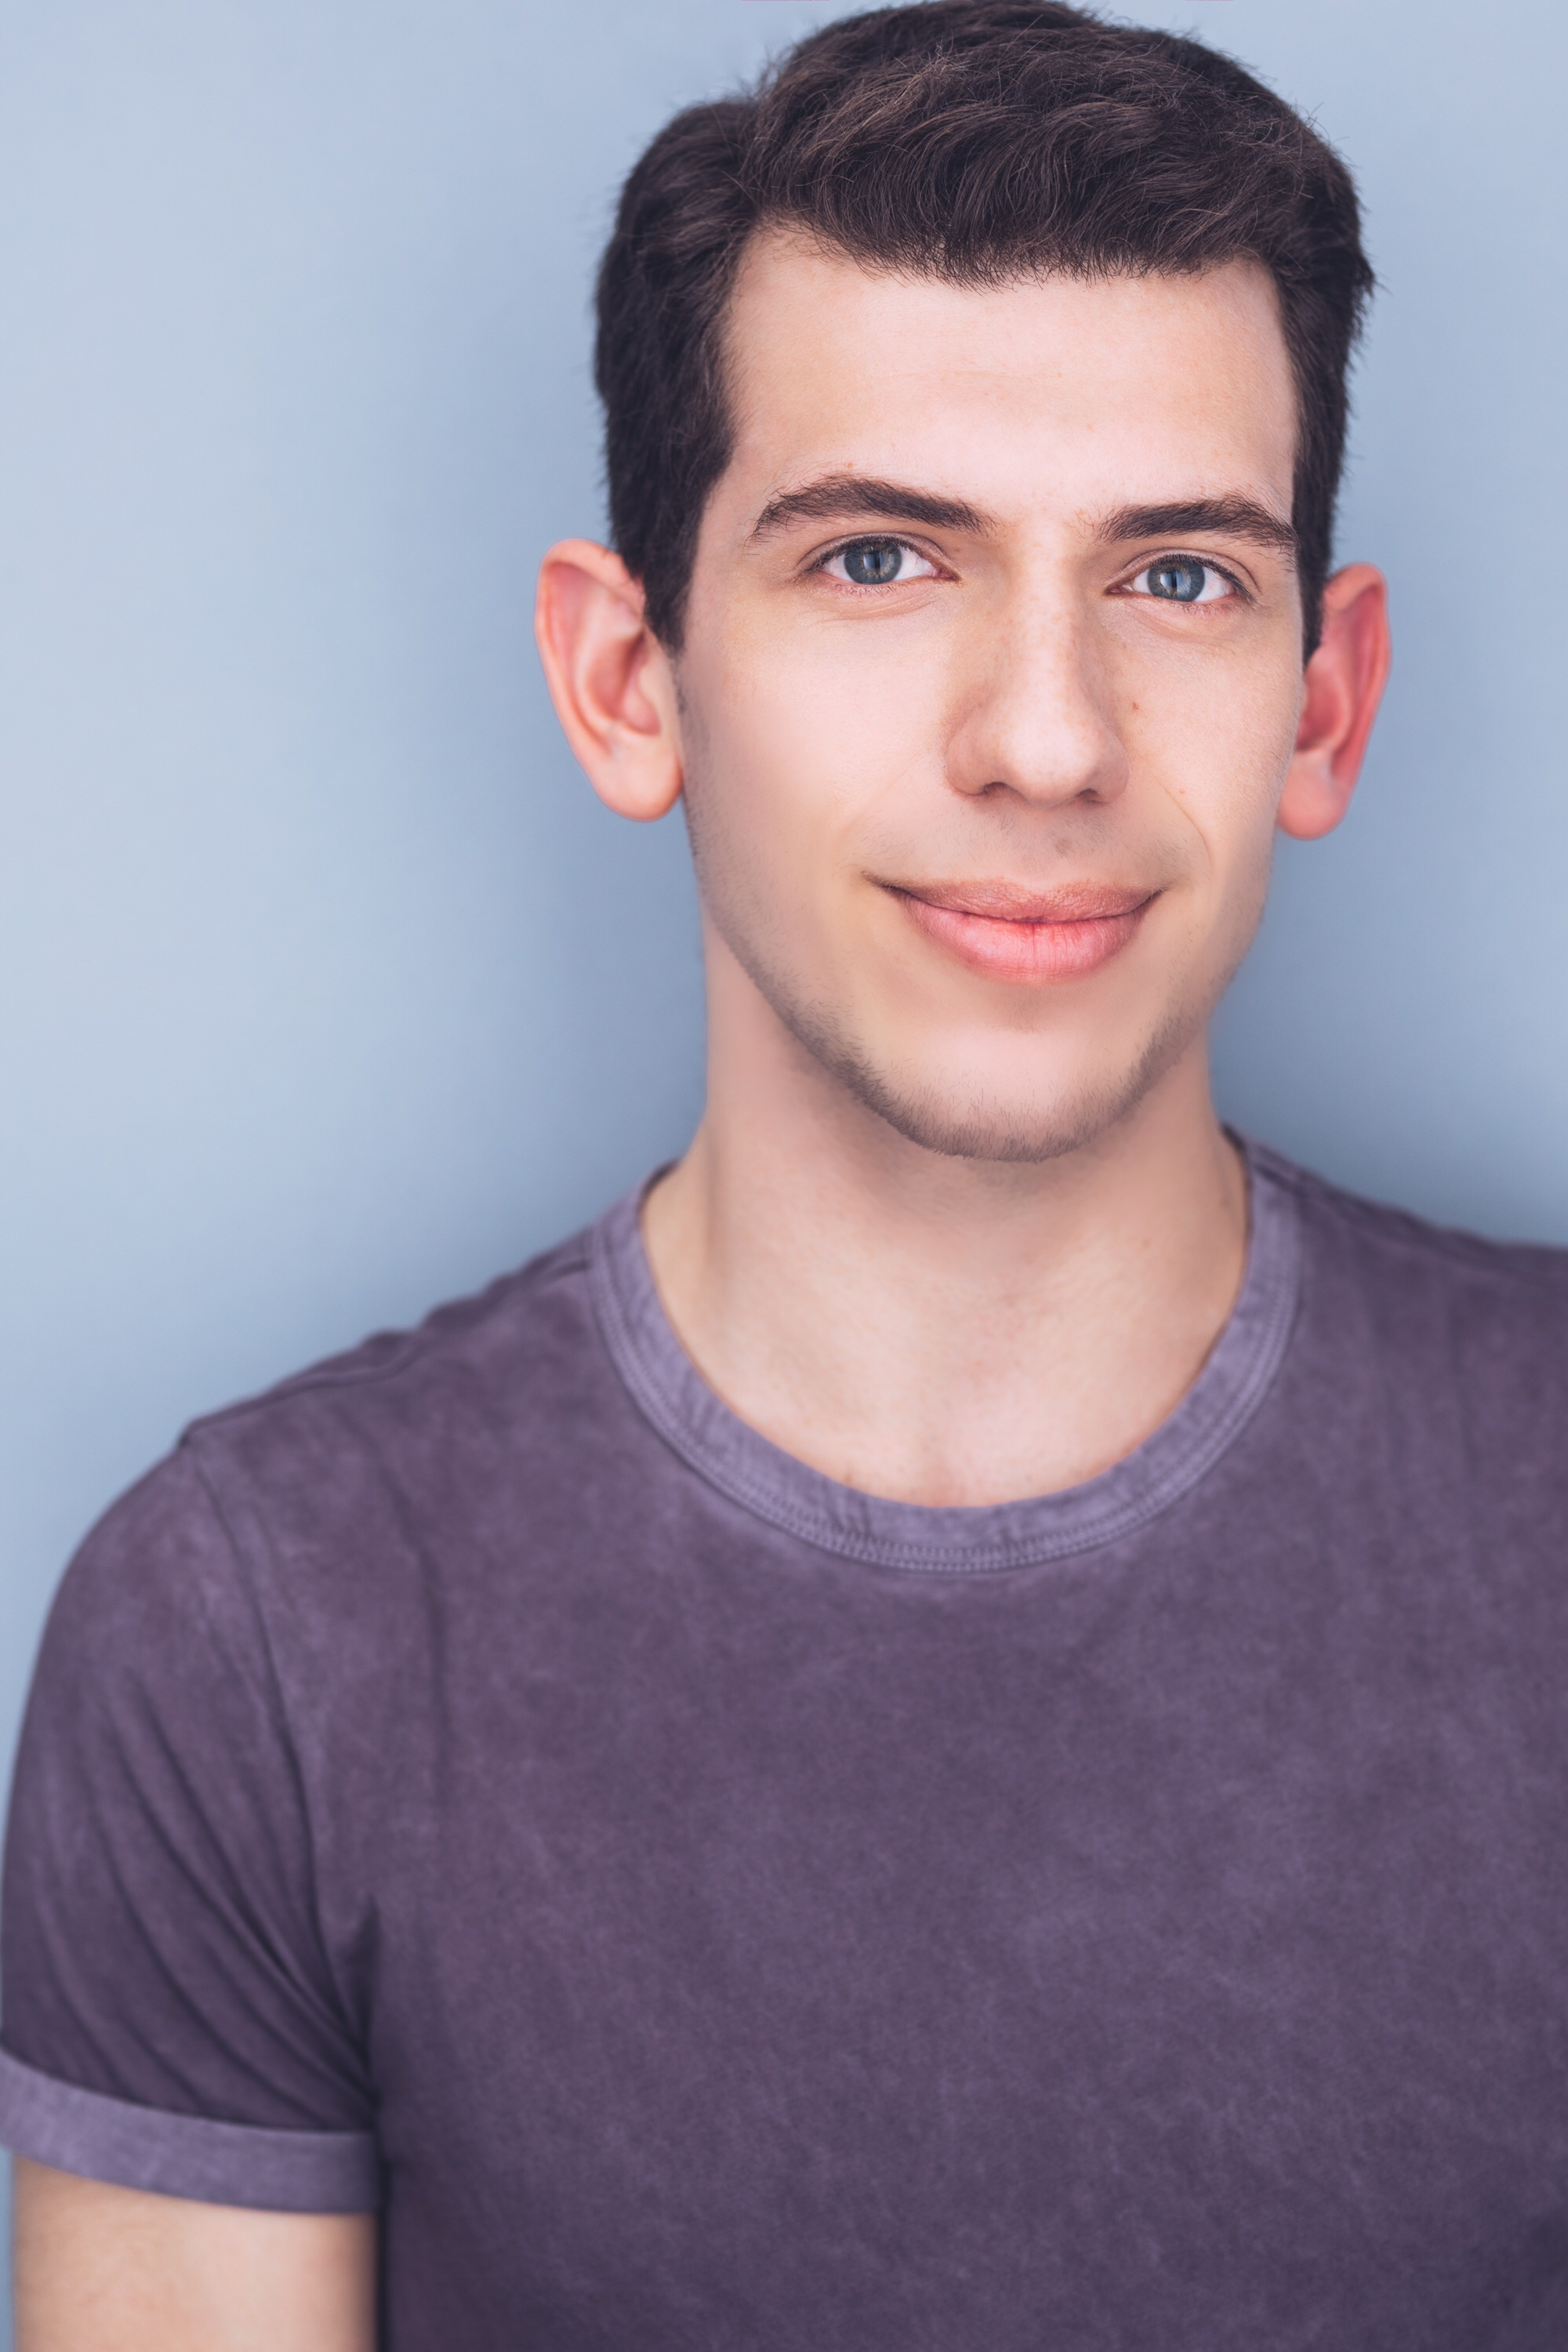 Sub/Urban Photography